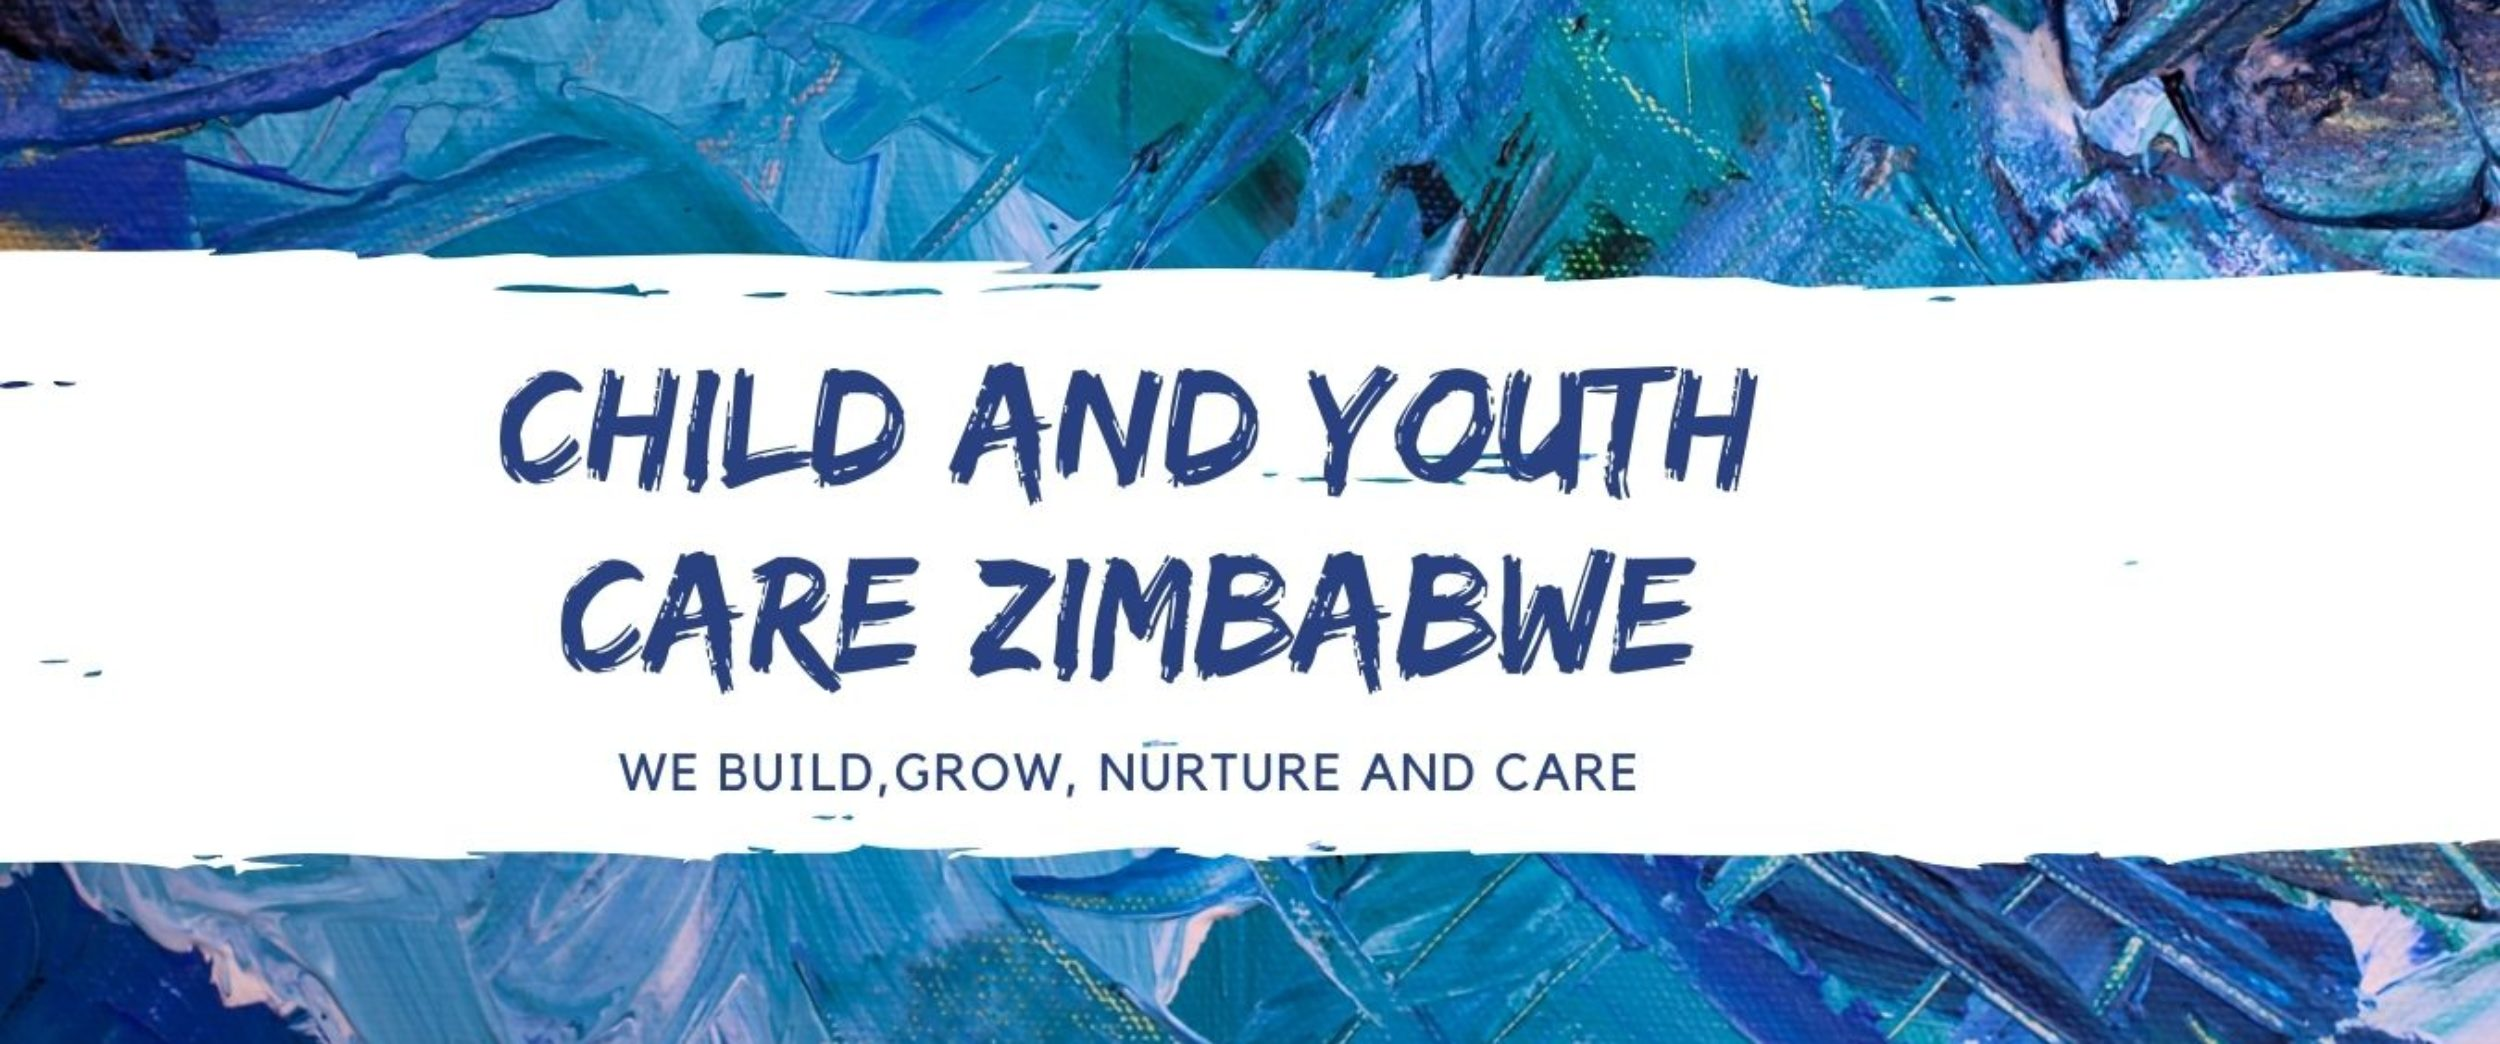 Child And Youth Care Zimbabwe